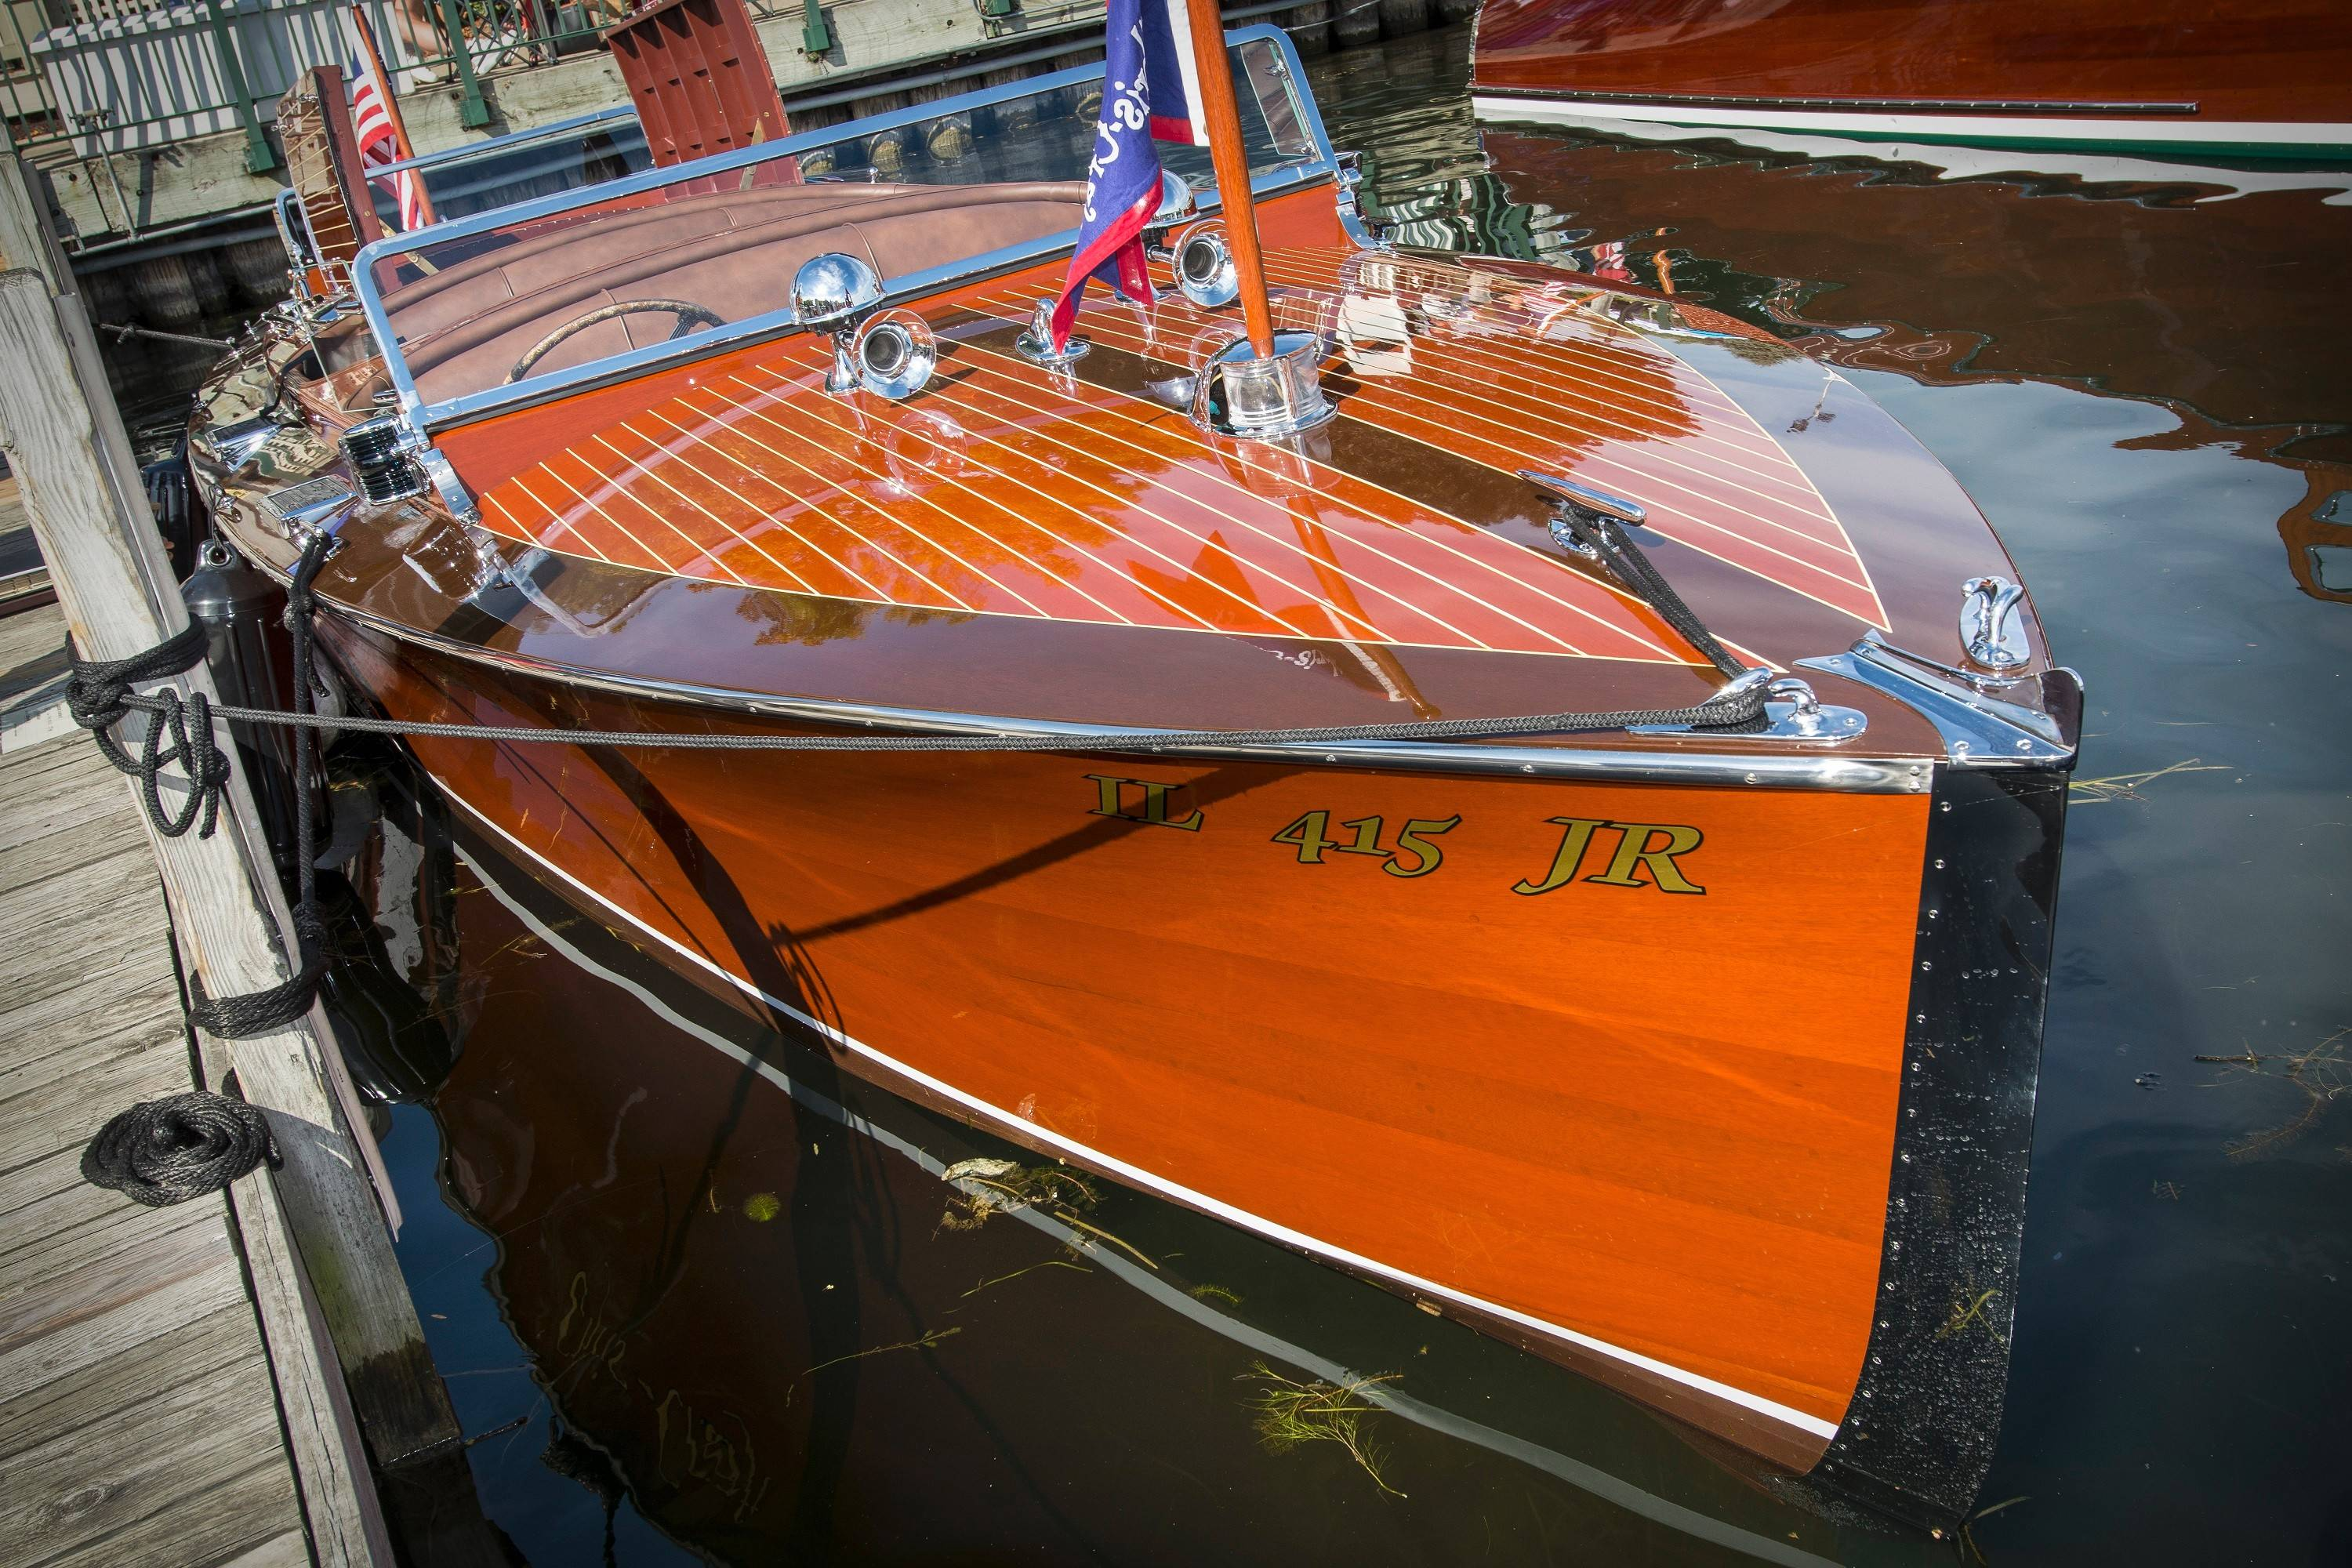 Millard said Chris-Craft manufactured about 60 runabouts in the decade leading up to World War II, and his 1937 model is one of about 15 from that period left.